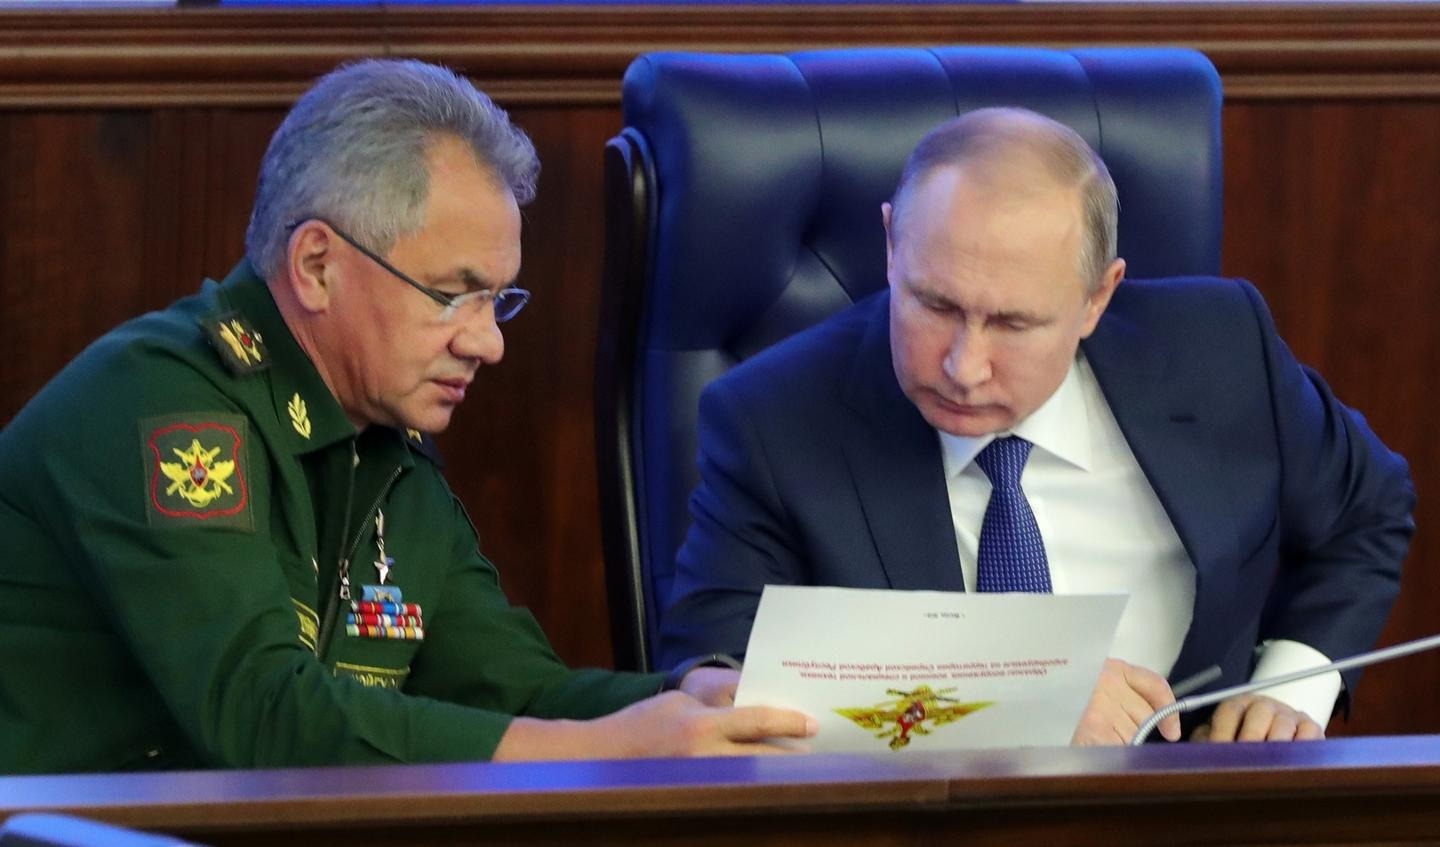 Death of Military Contractors Illuminates Russia's War by Proxy in Syria